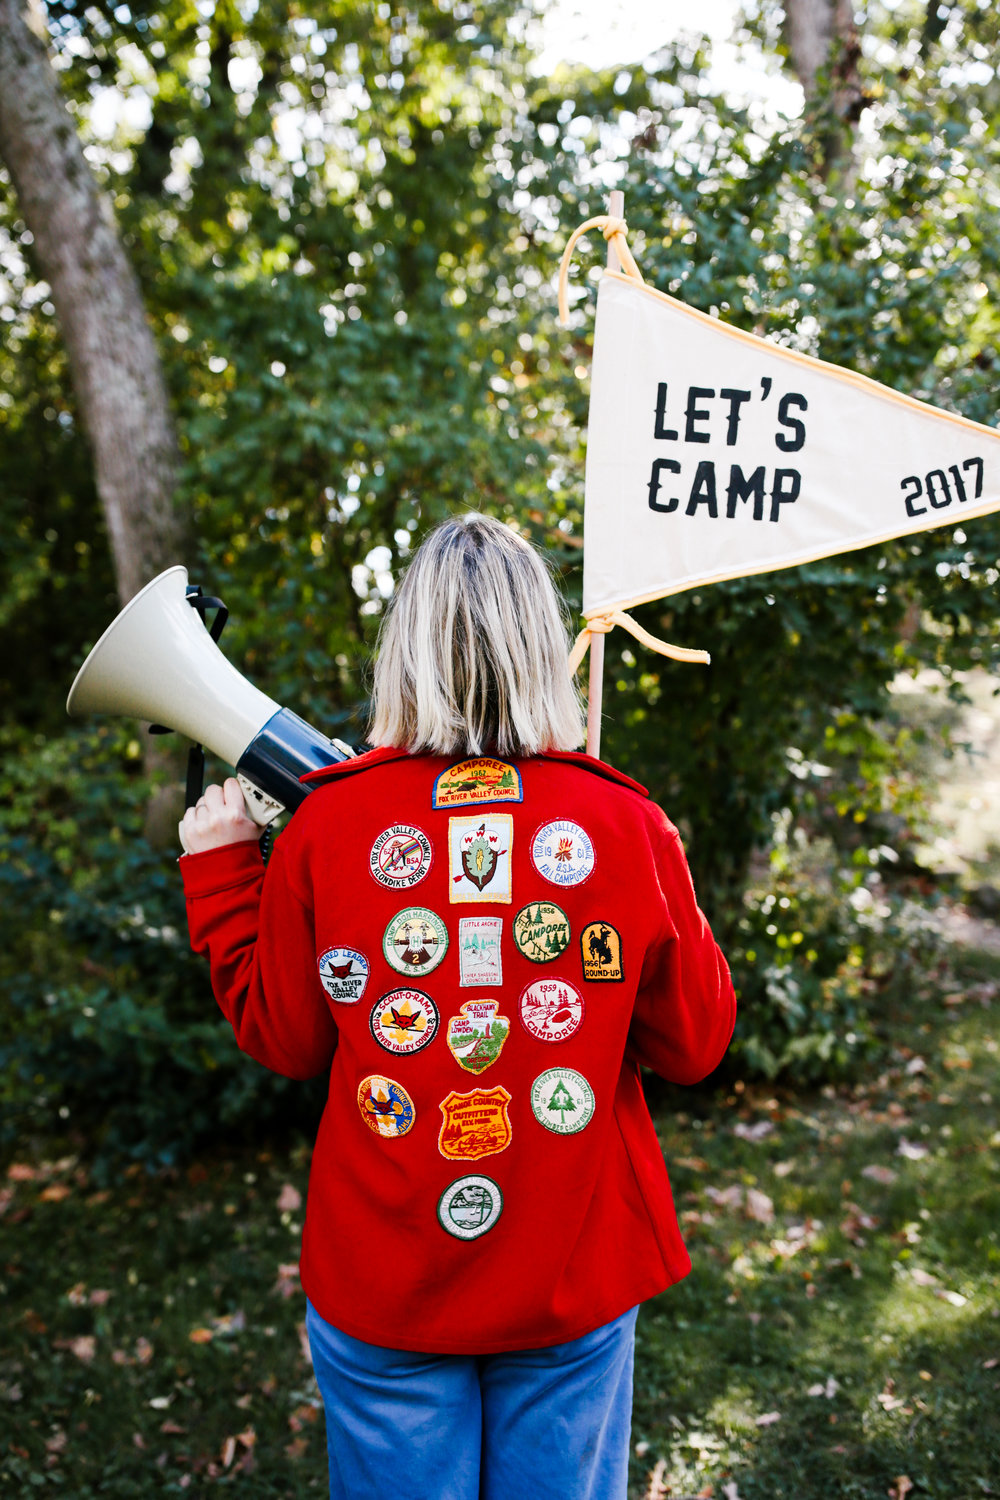 Let's-Camp-Retreat-7.jpg